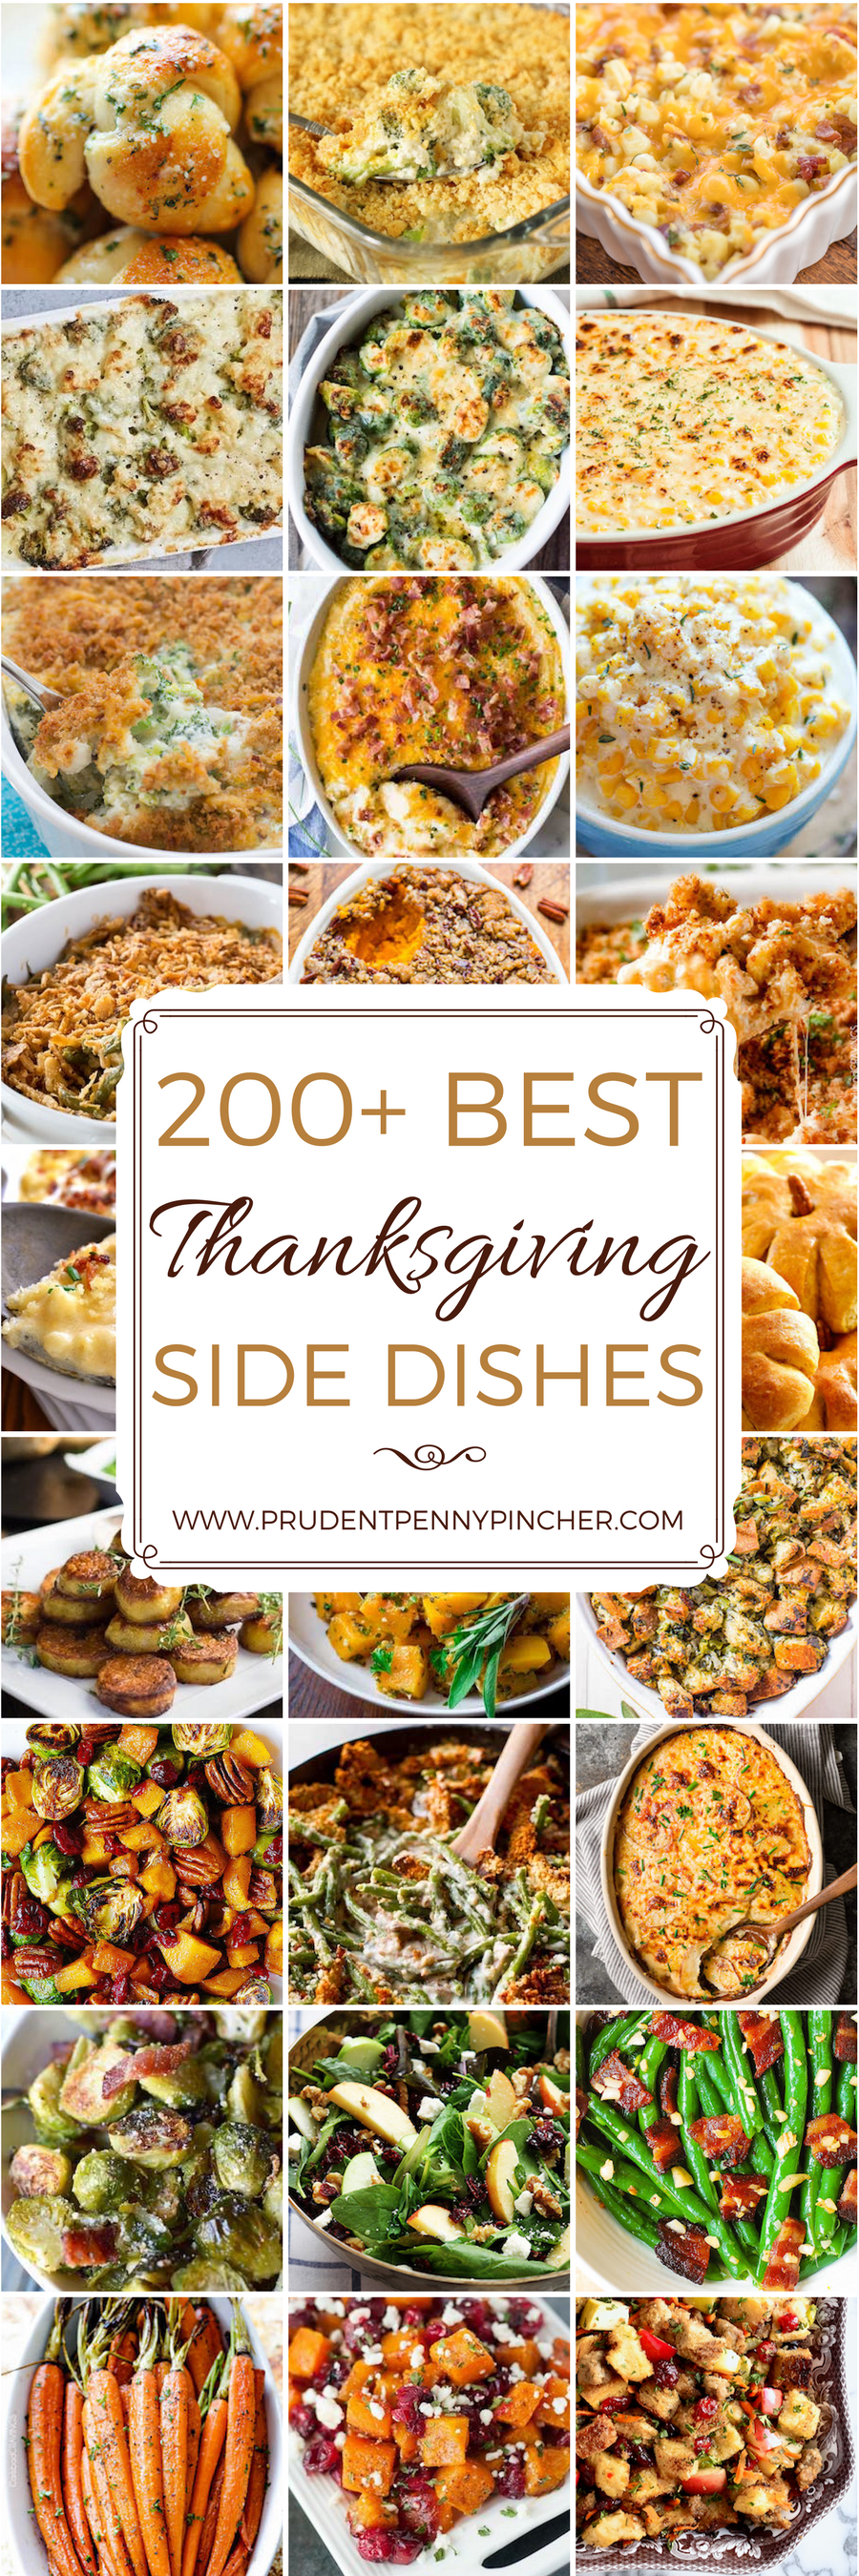 thanksgiving recipes for side dishes